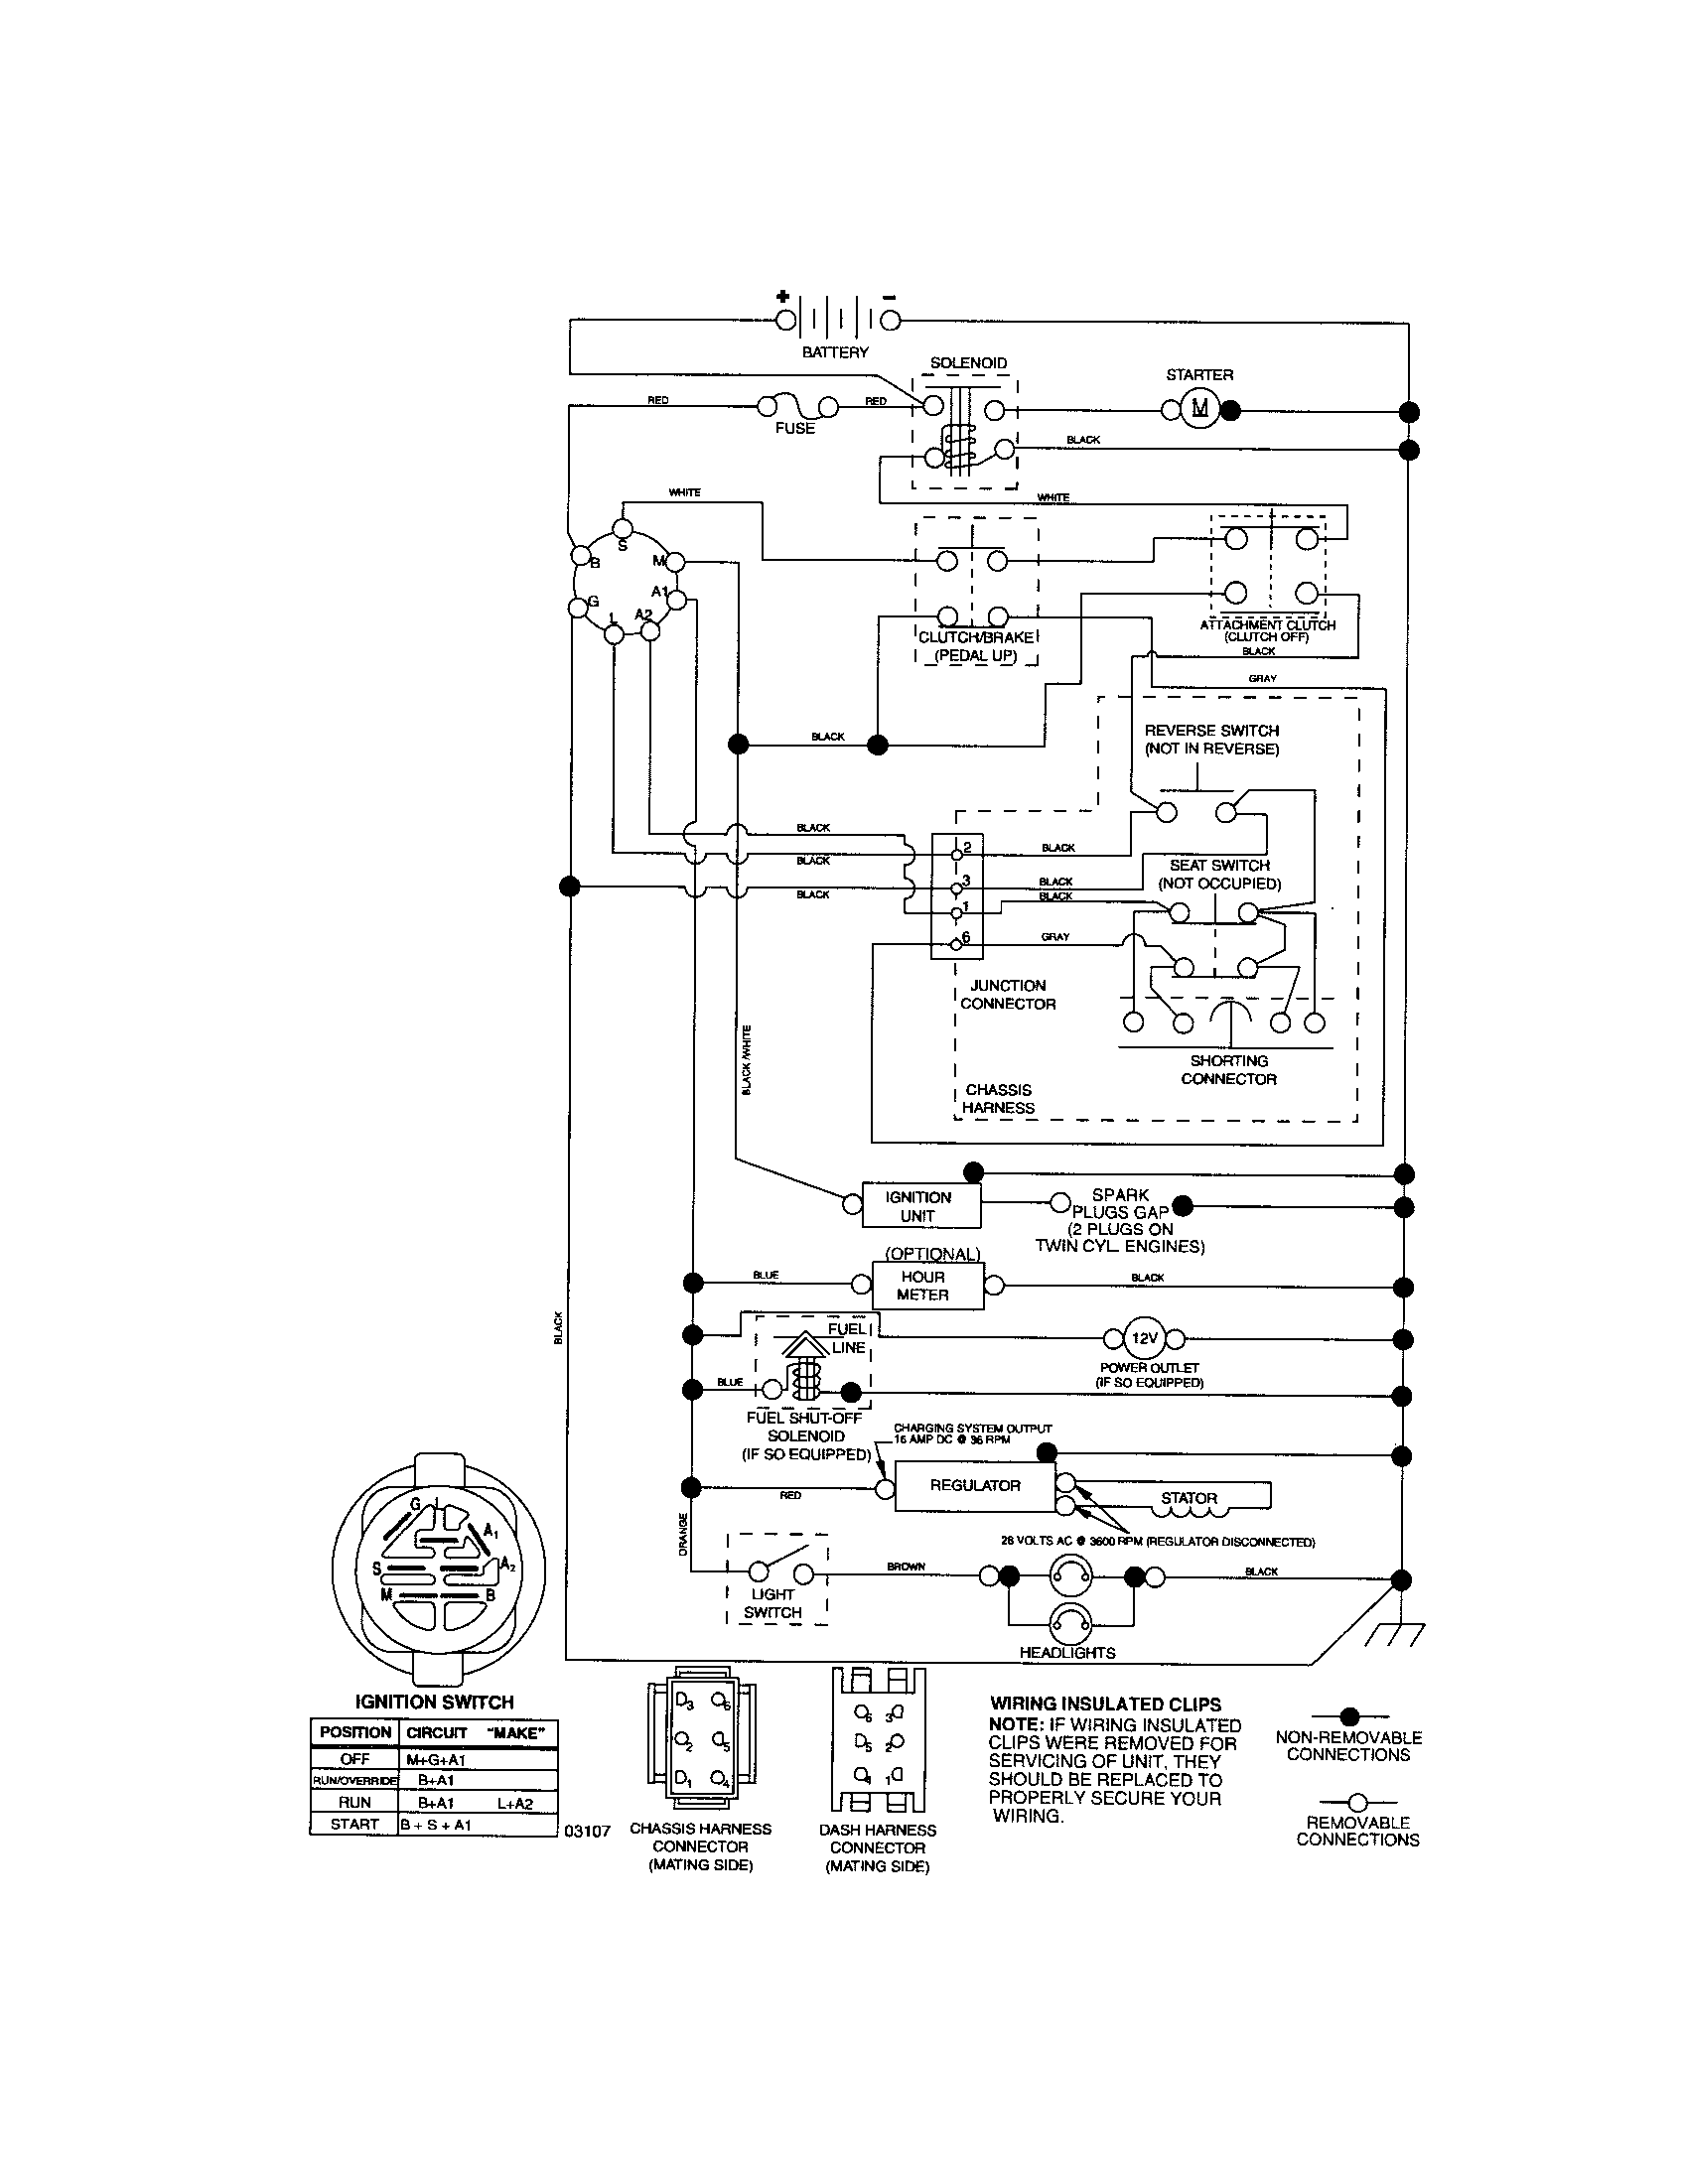 6af5f1447fd13c8443376822ddc1e105 craftsman riding mower electrical diagram wiring diagram MTD Riding Mower Wiring Diagram at bakdesigns.co